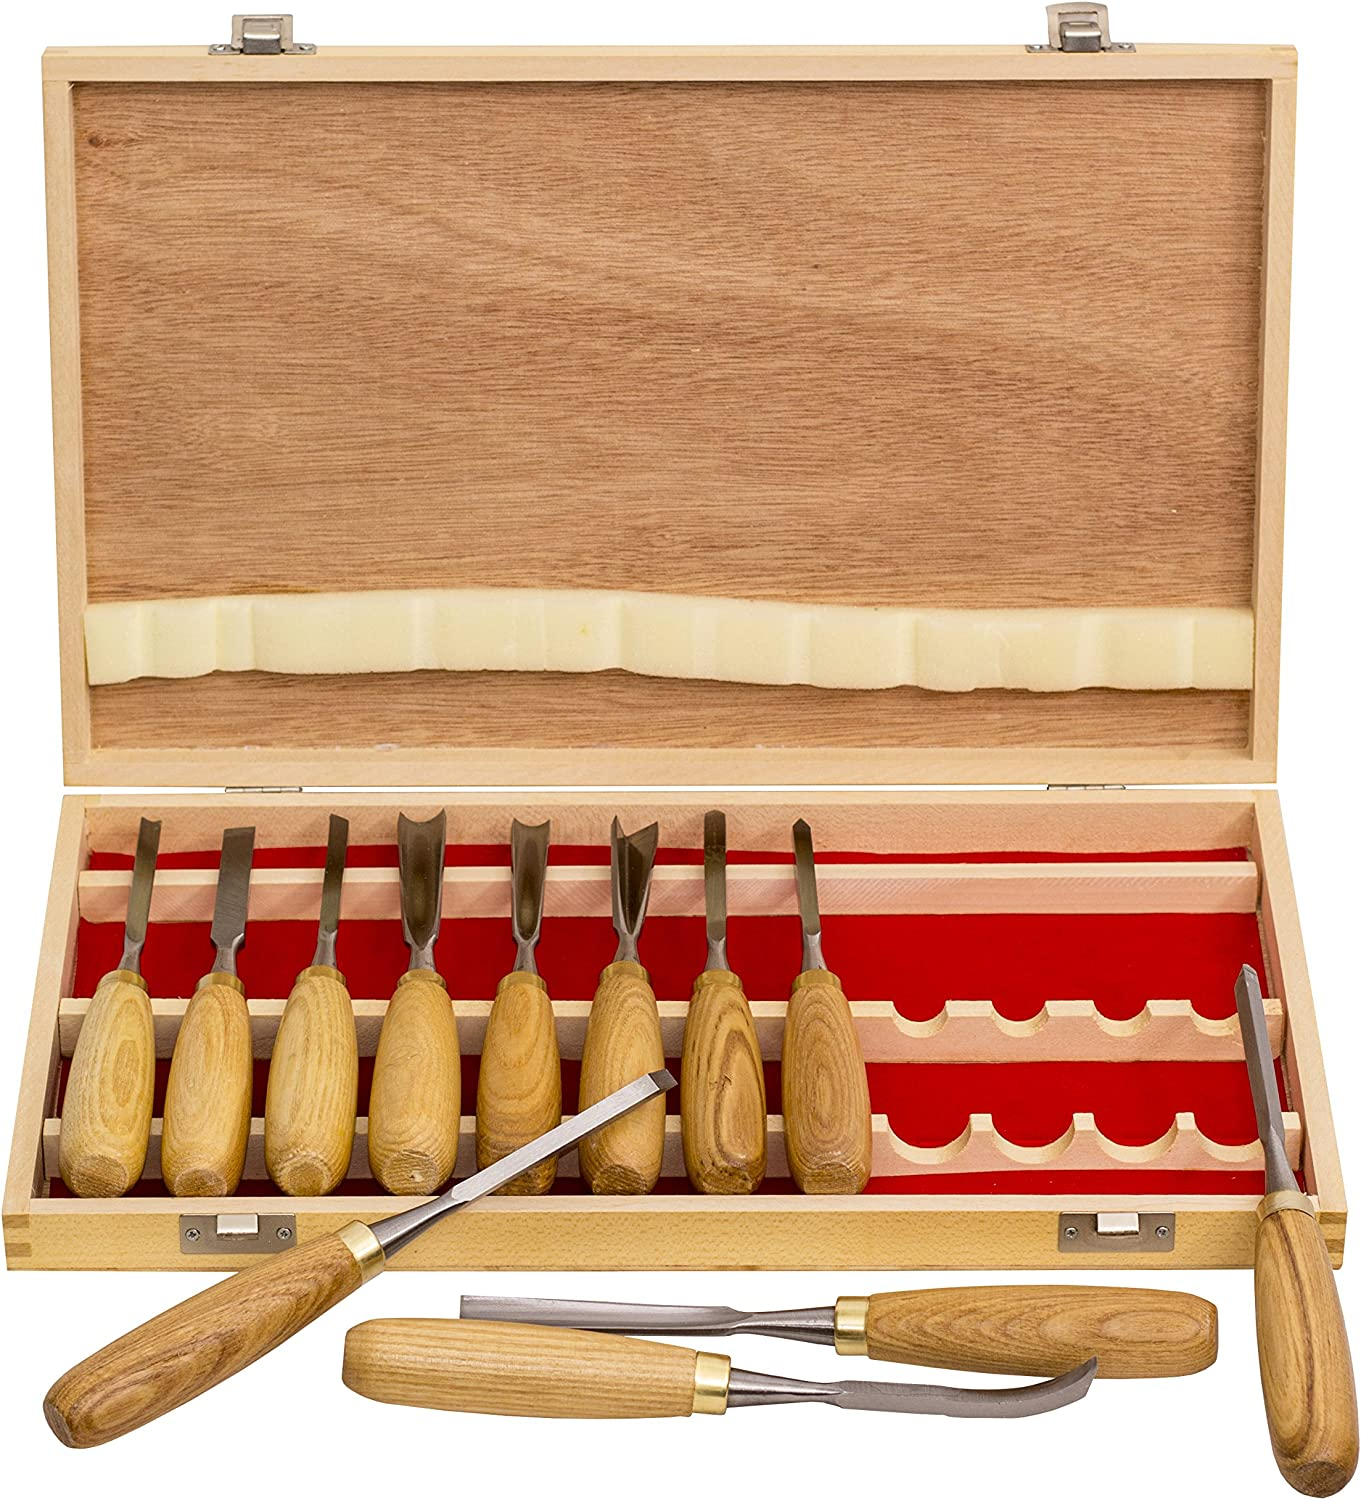 12 Pcs Luxury Wood Carving Kit Chisel Tool Woodworking Cutter Hand Tools Set